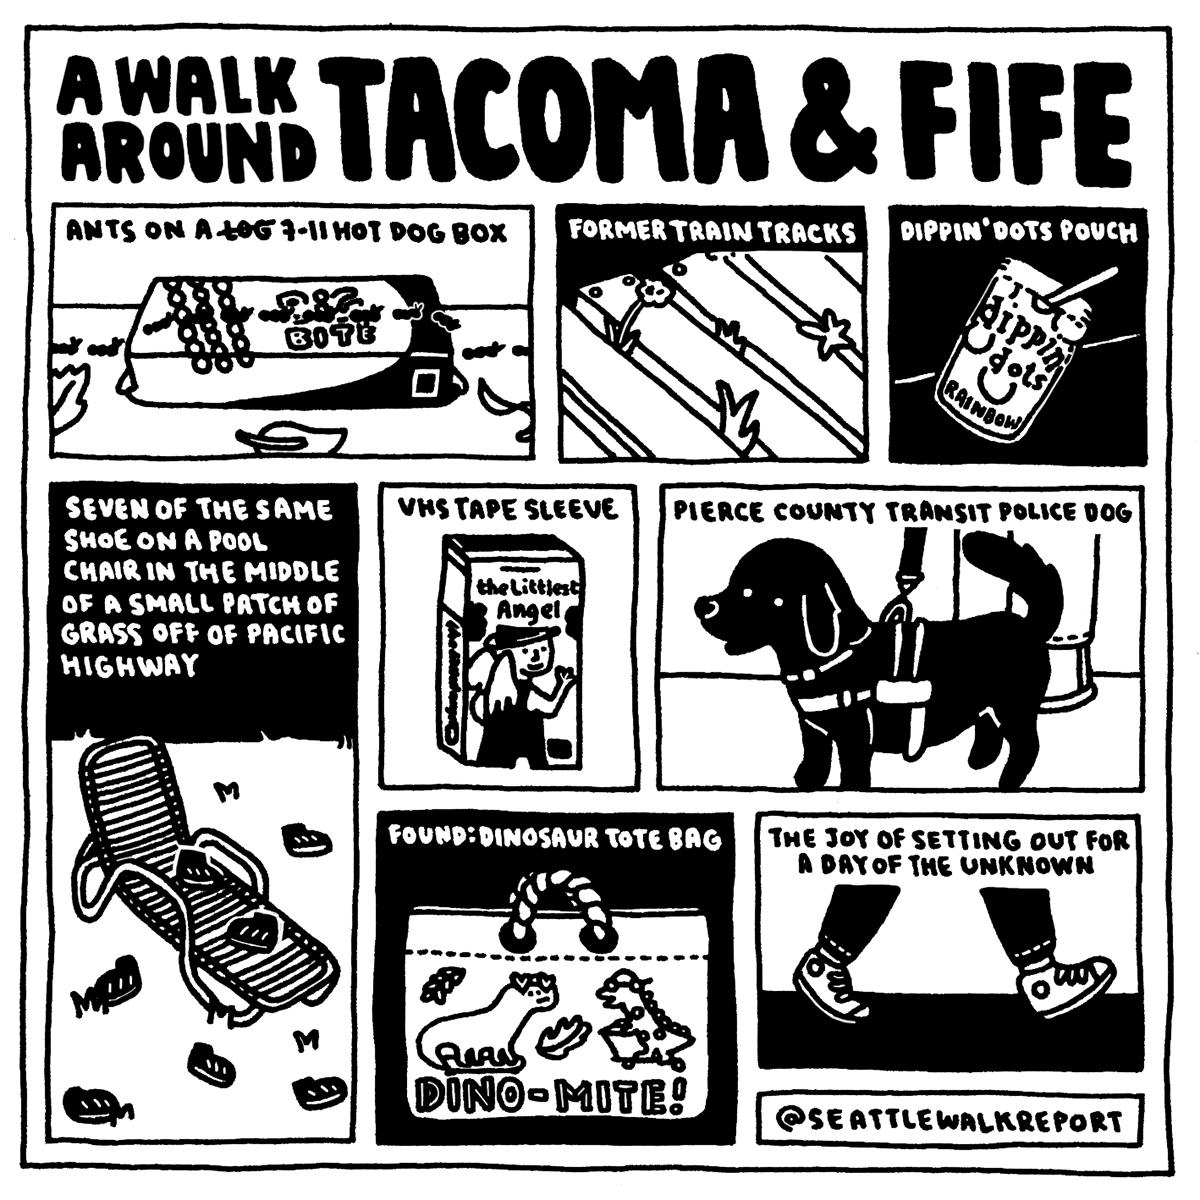 A Walk Around Tacoma and Fife. (Image: @seattlewalkreport / seattlerefined.com/seattlewalkreport)